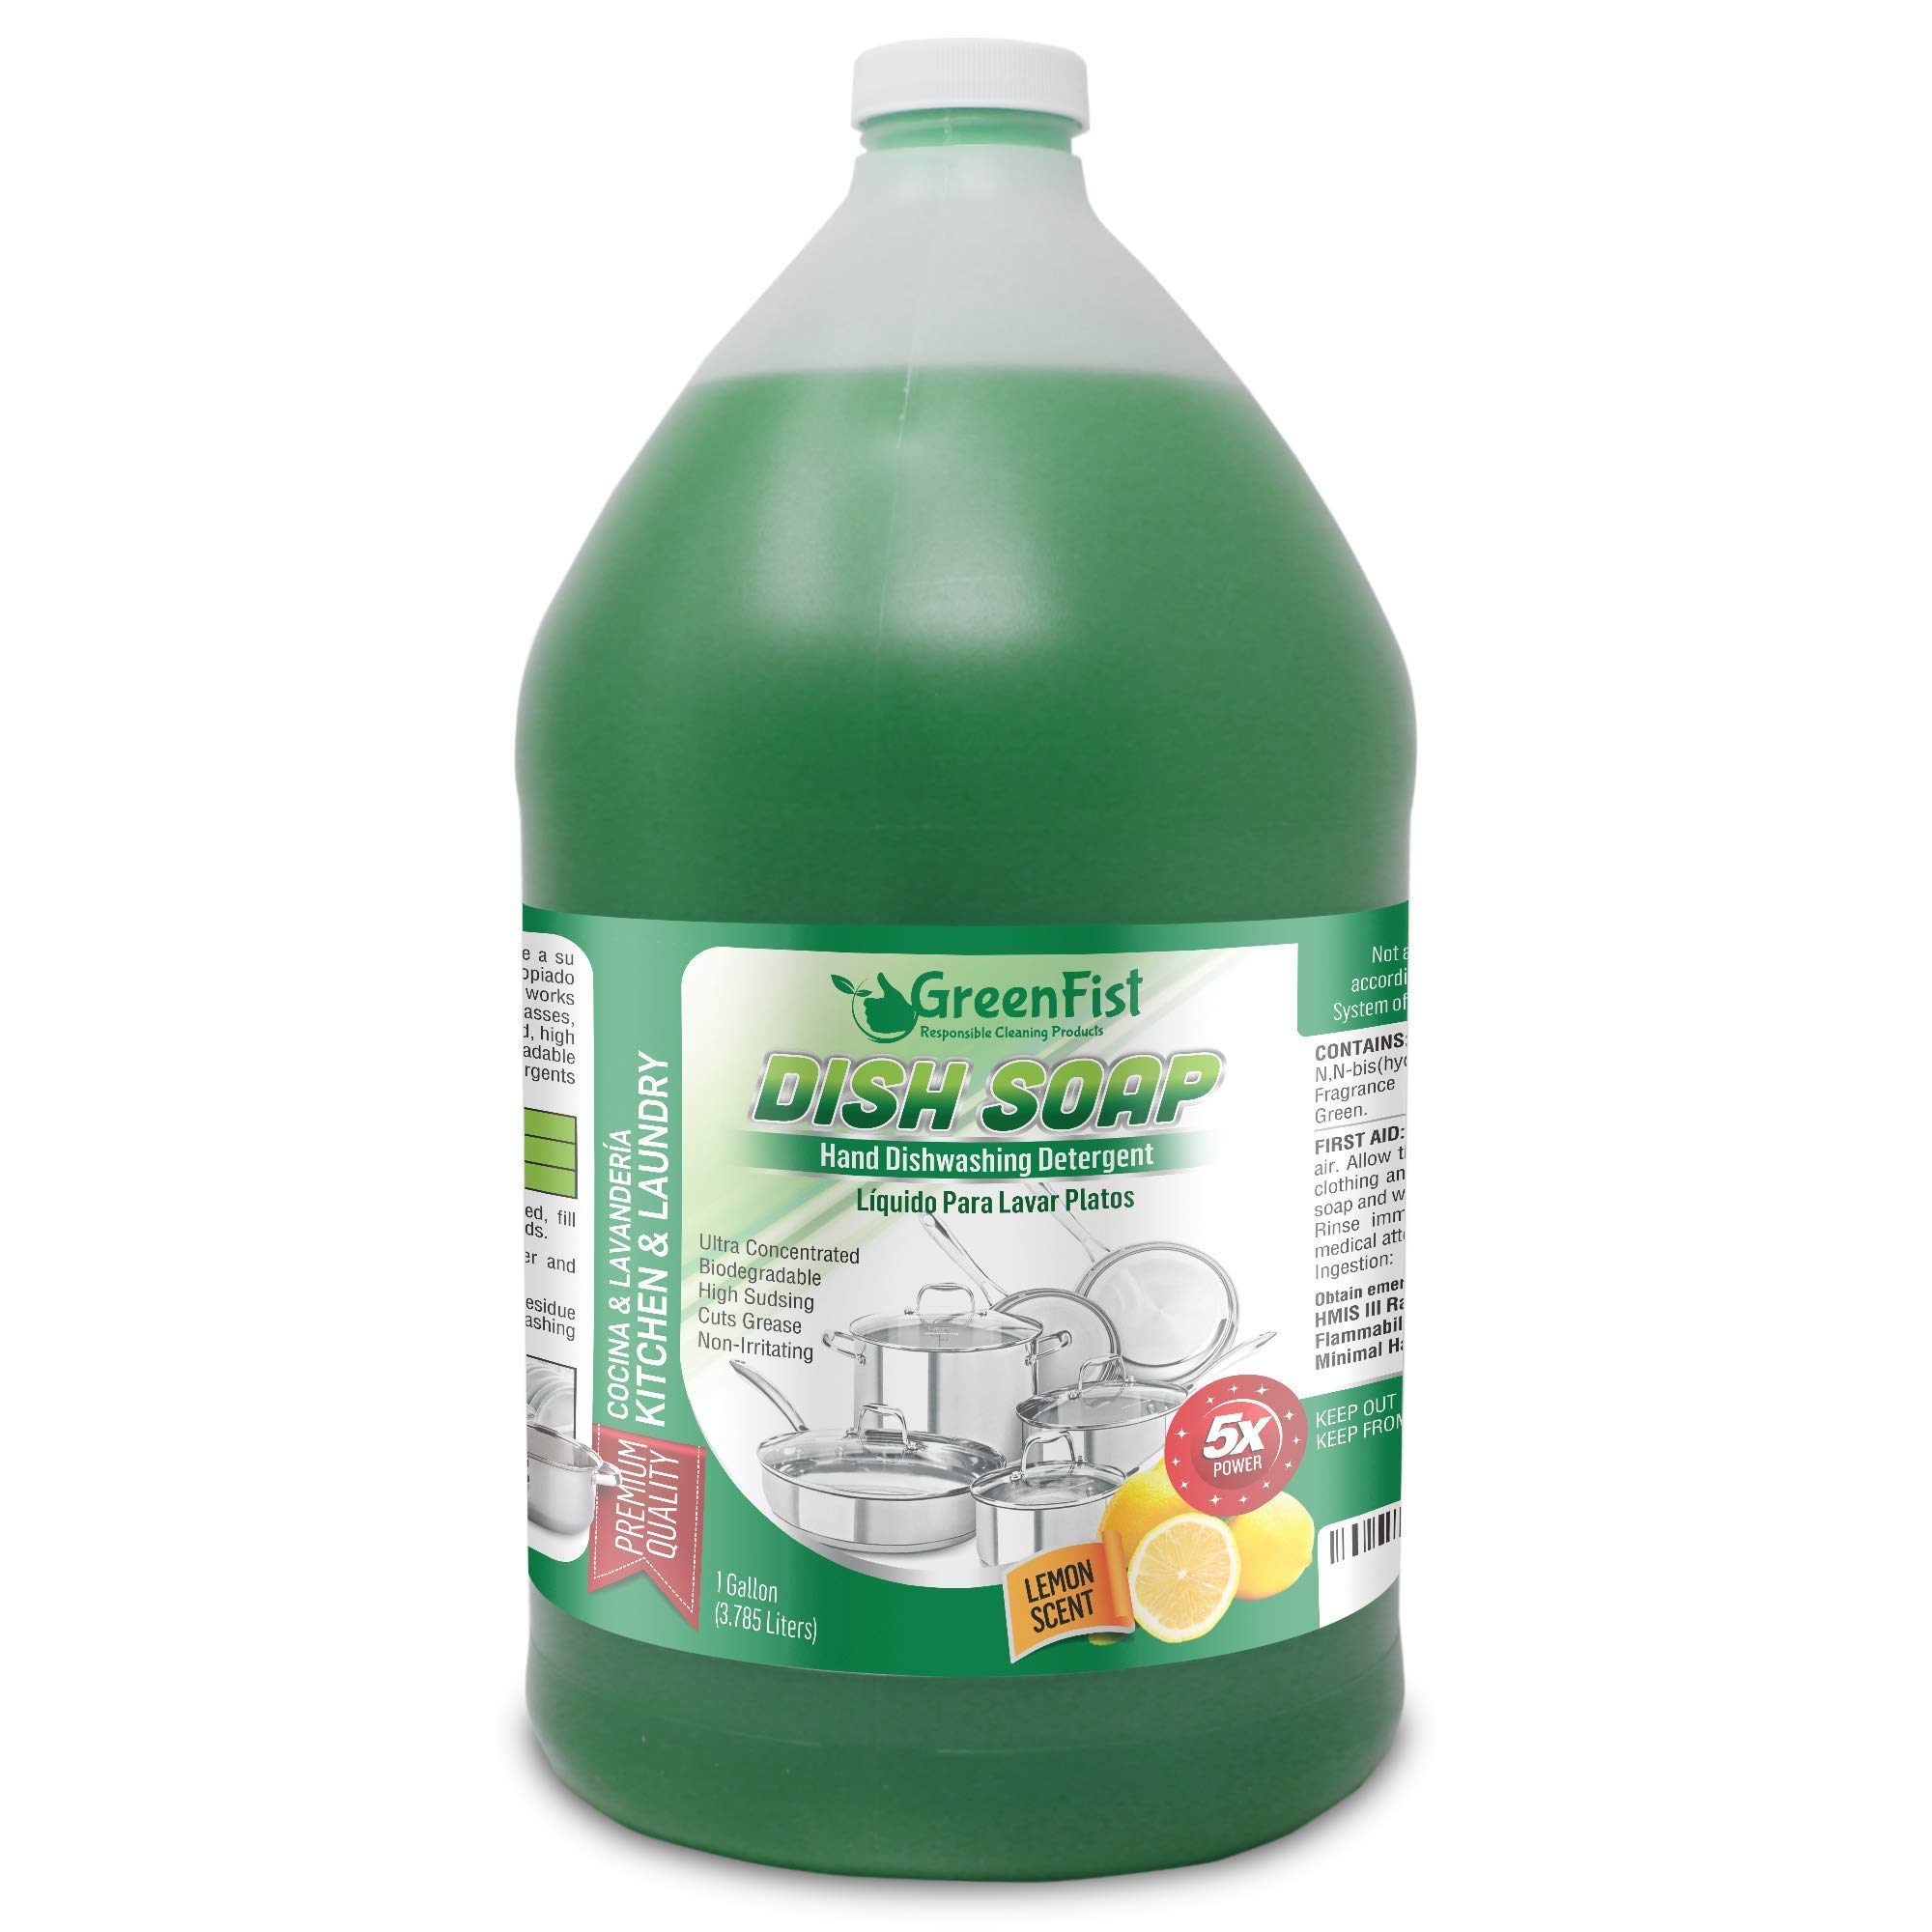 GreenFist Hand Dish Detergent Soap - Professional Kitchen Pot & Pan Wash Liquid Cleaner [Concentrated] - Non Toxic, Light or Heavy Use, Lemon Scent }, 128 ounce (1 Gallon)